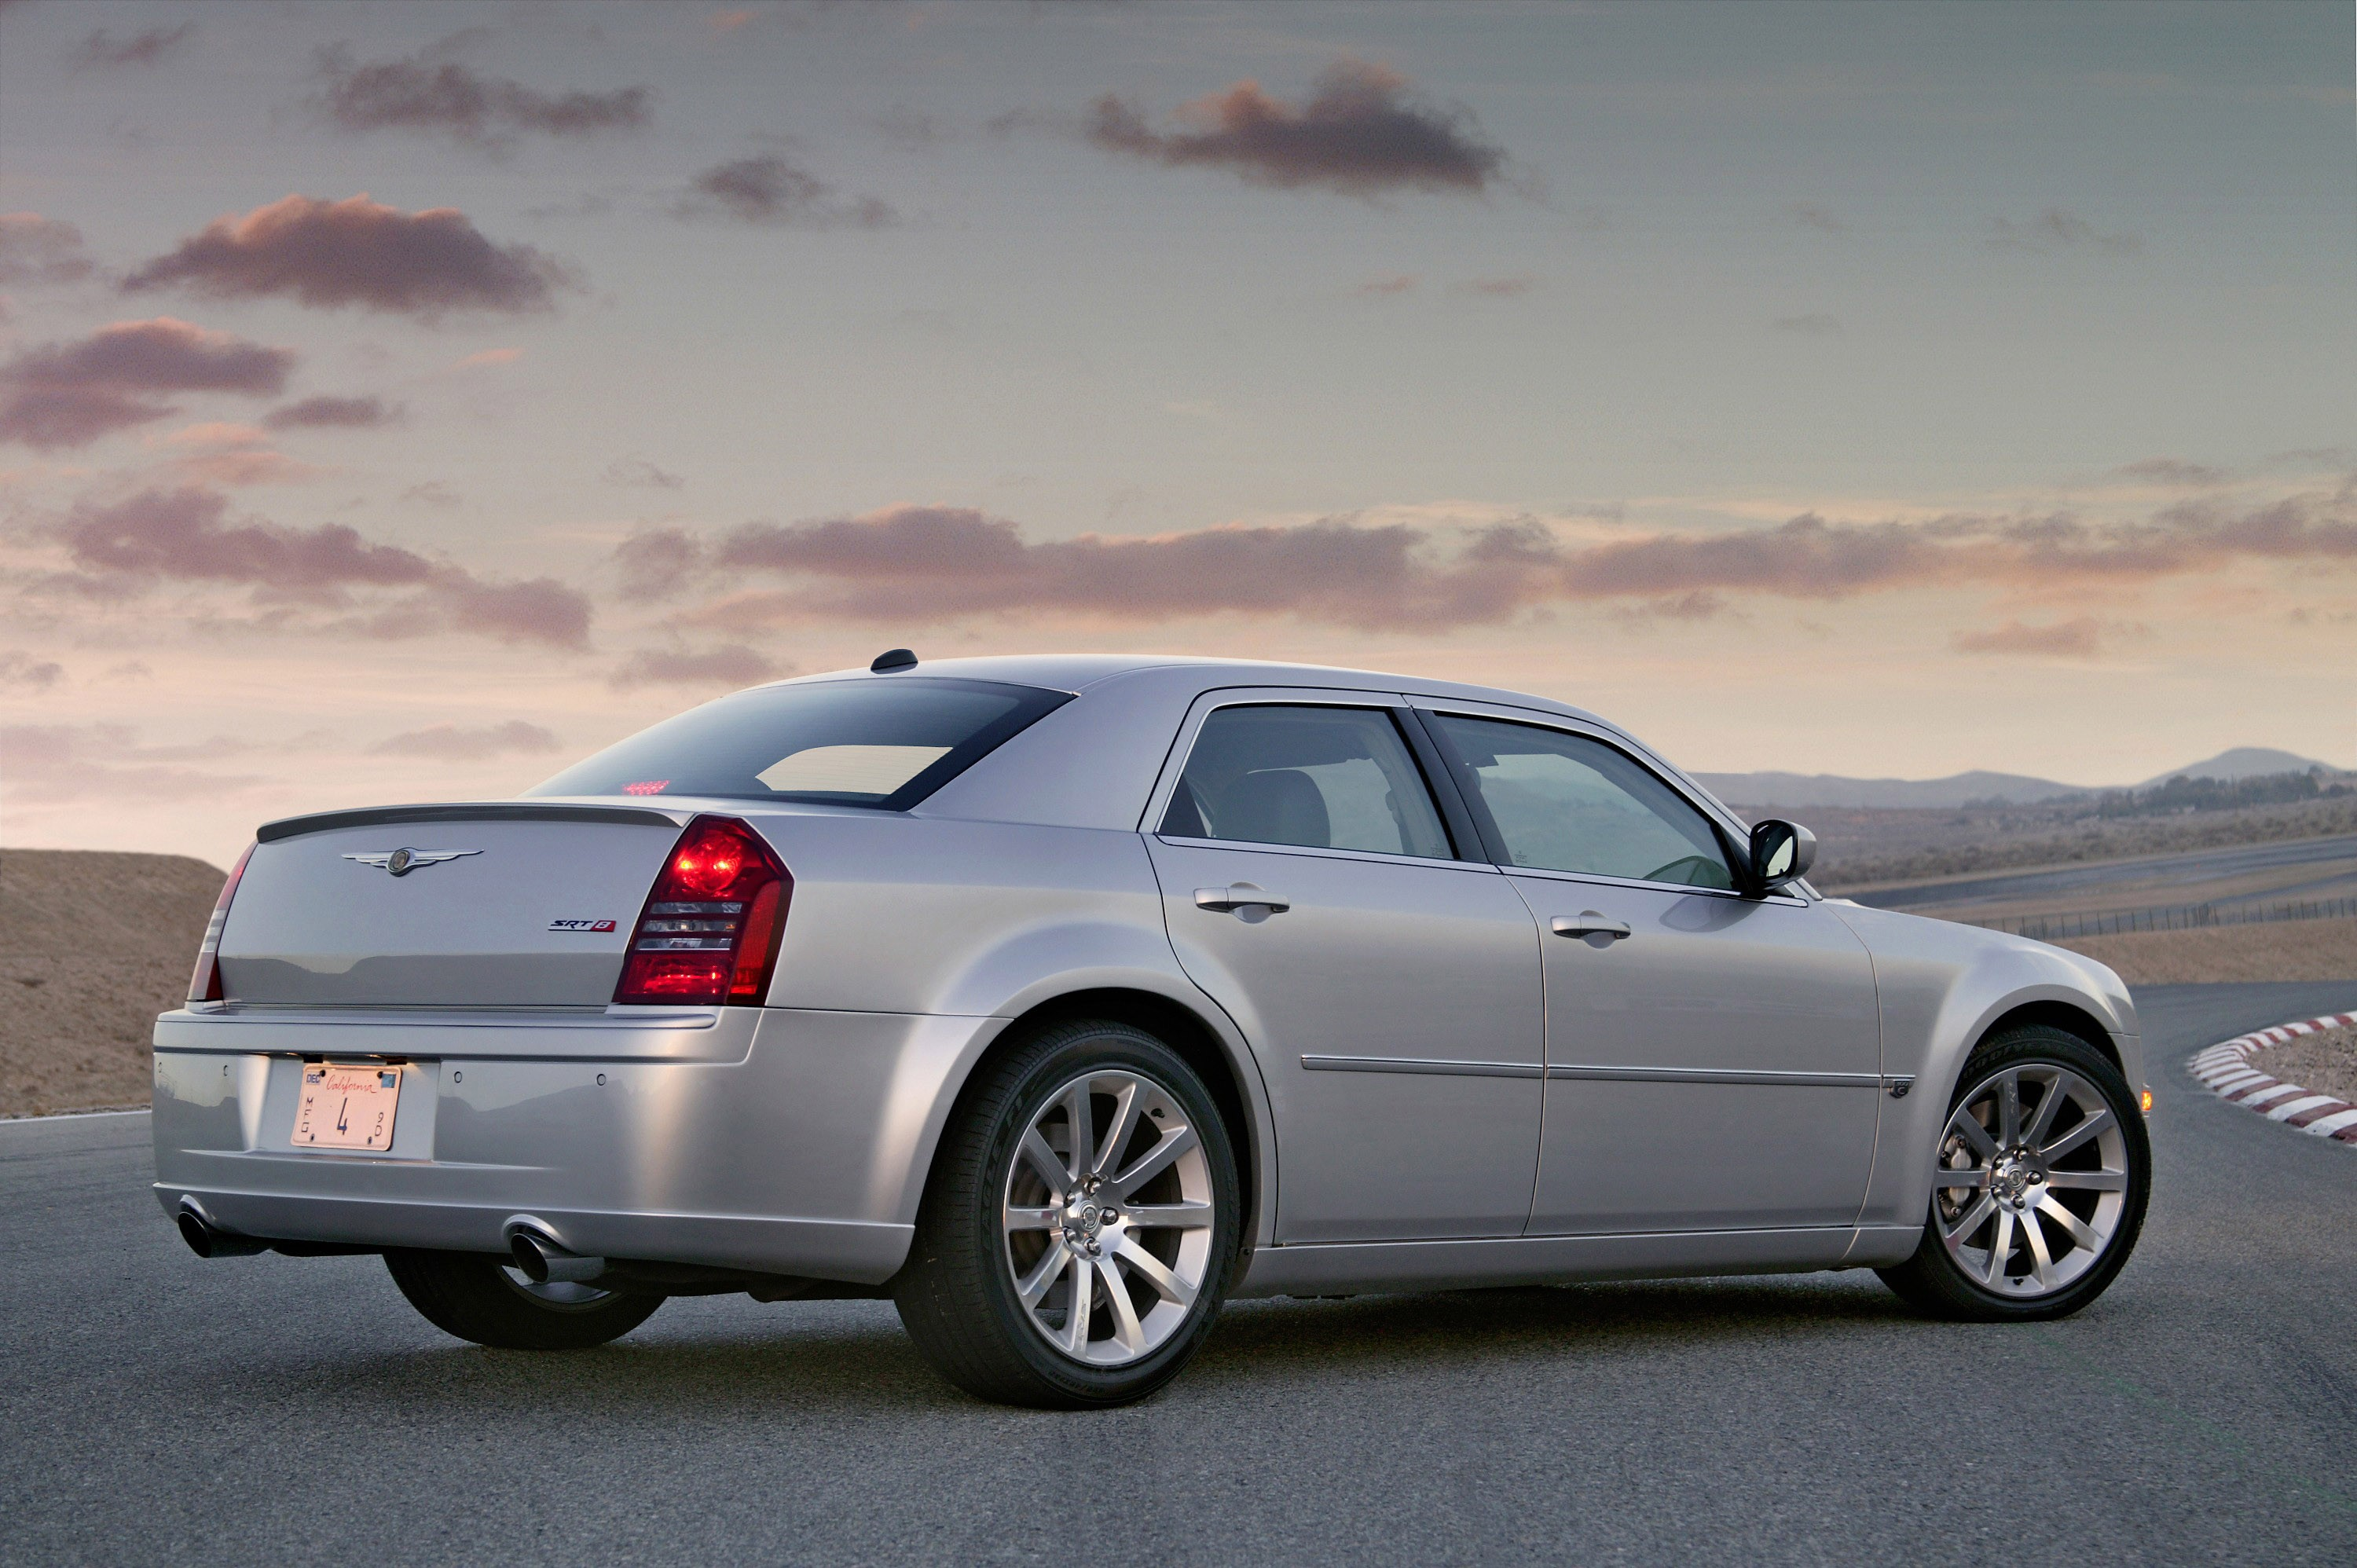 Chrysler 300srt >> CHRYSLER 300C SRT8 - 2005, 2006, 2007, 2008, 2009, 2010 - autoevolution